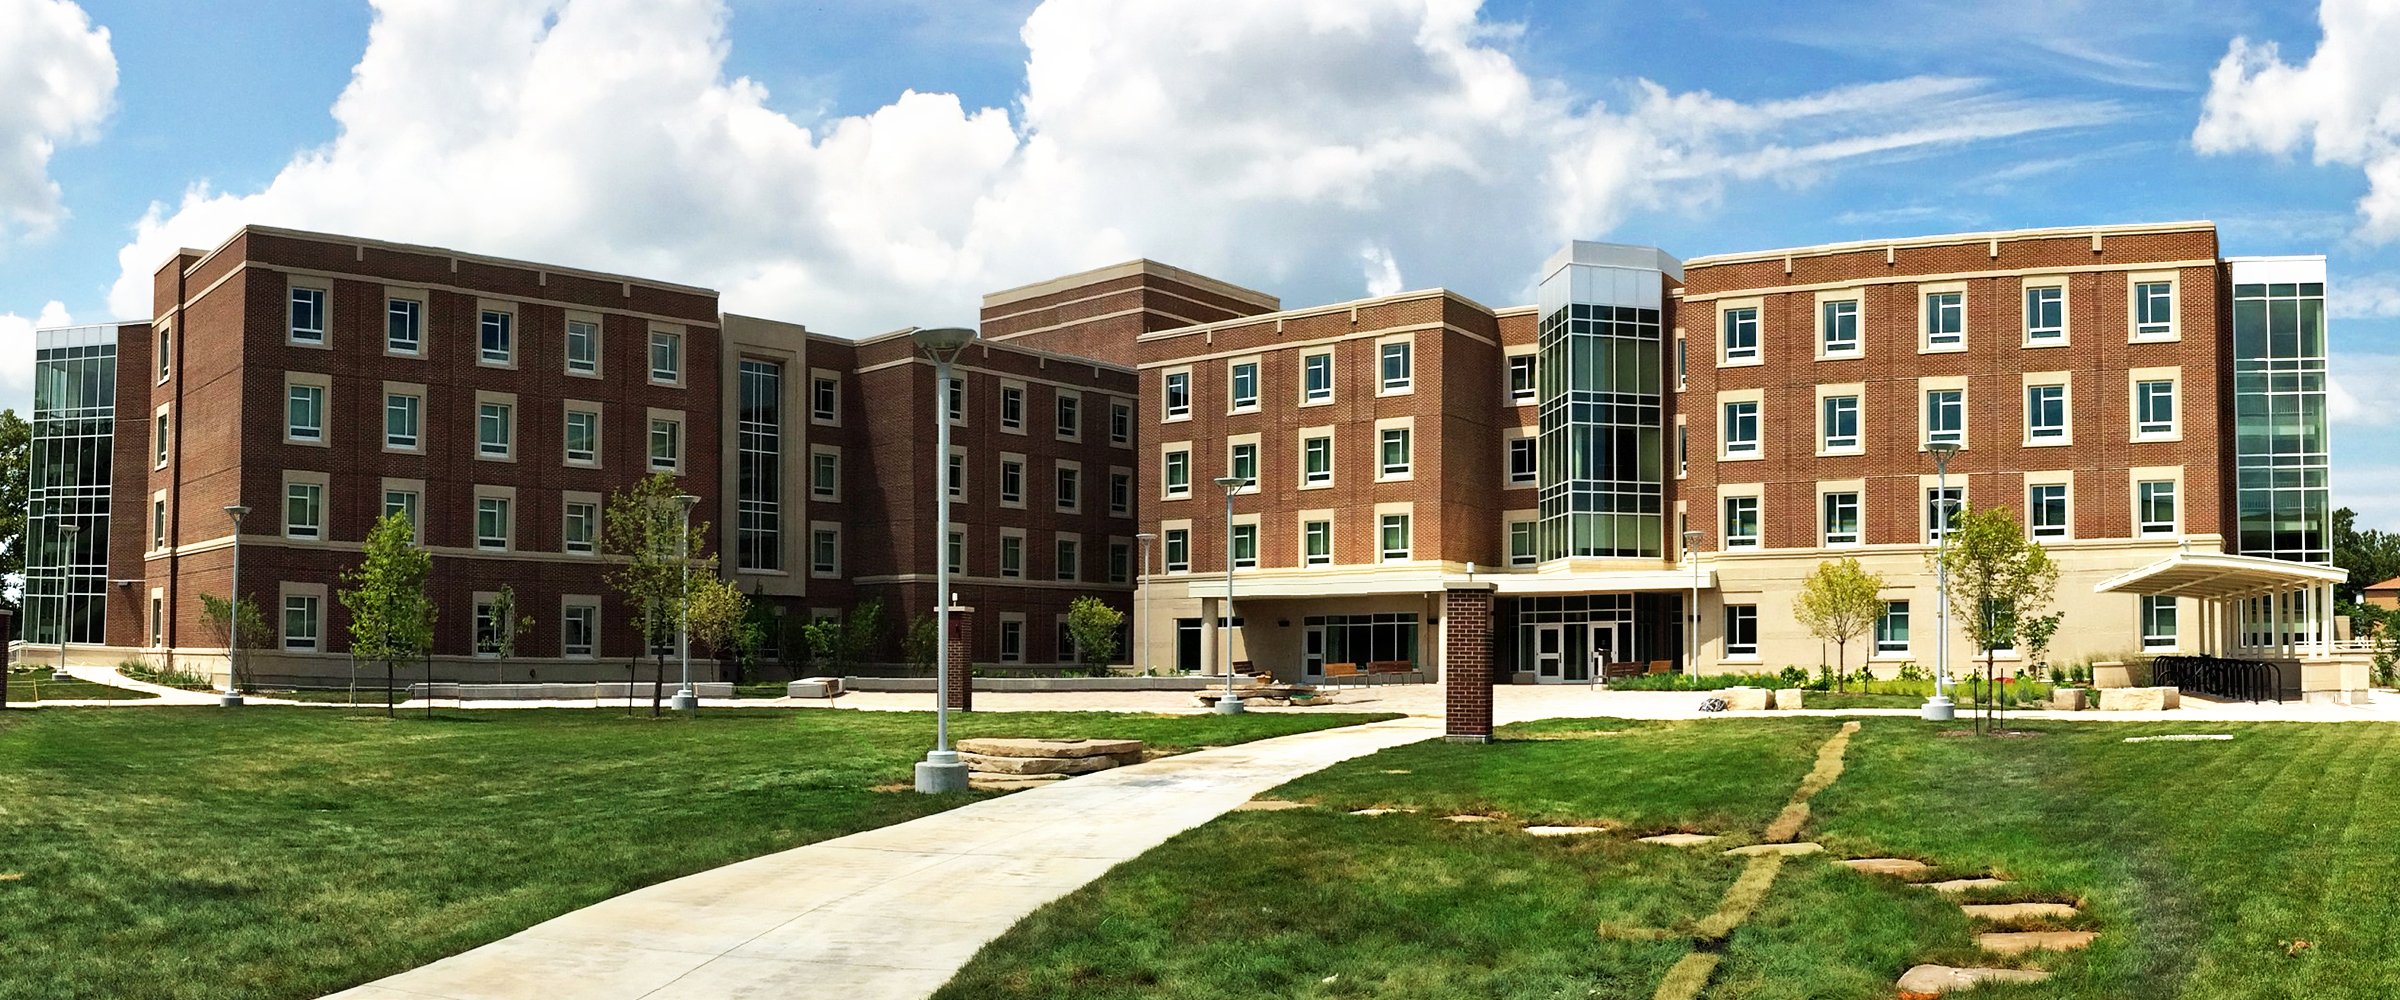 Image result for university housing uiuc